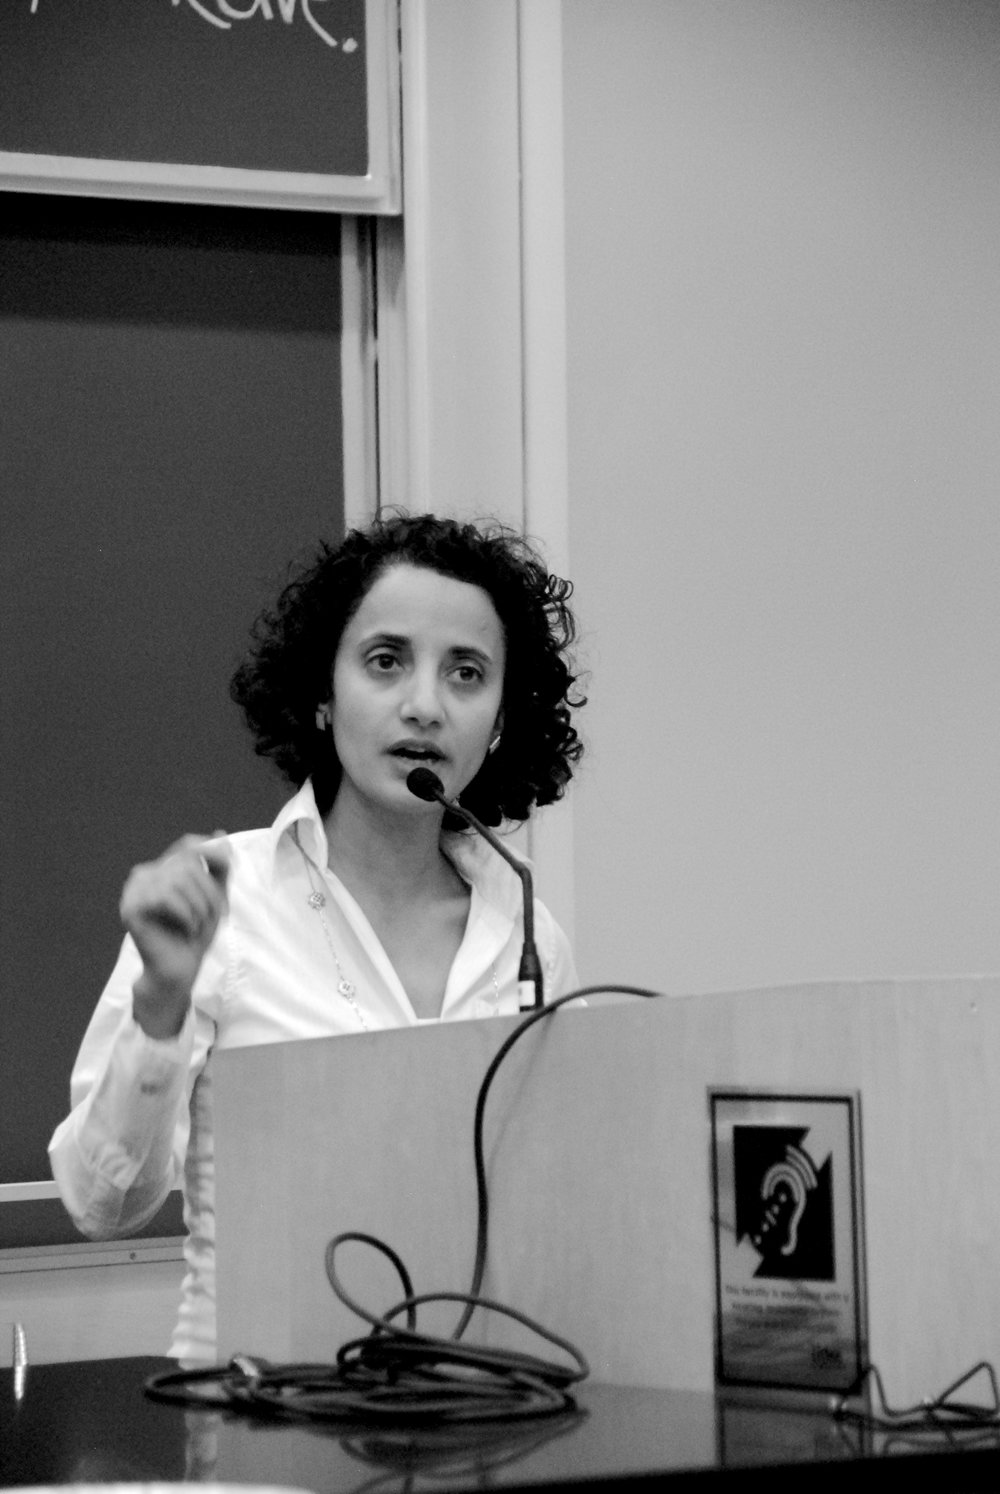 Photos by Ayla Safran '18 Nadwa Al-Dawsari addressed the MHC community on the current political situation in Yemen.